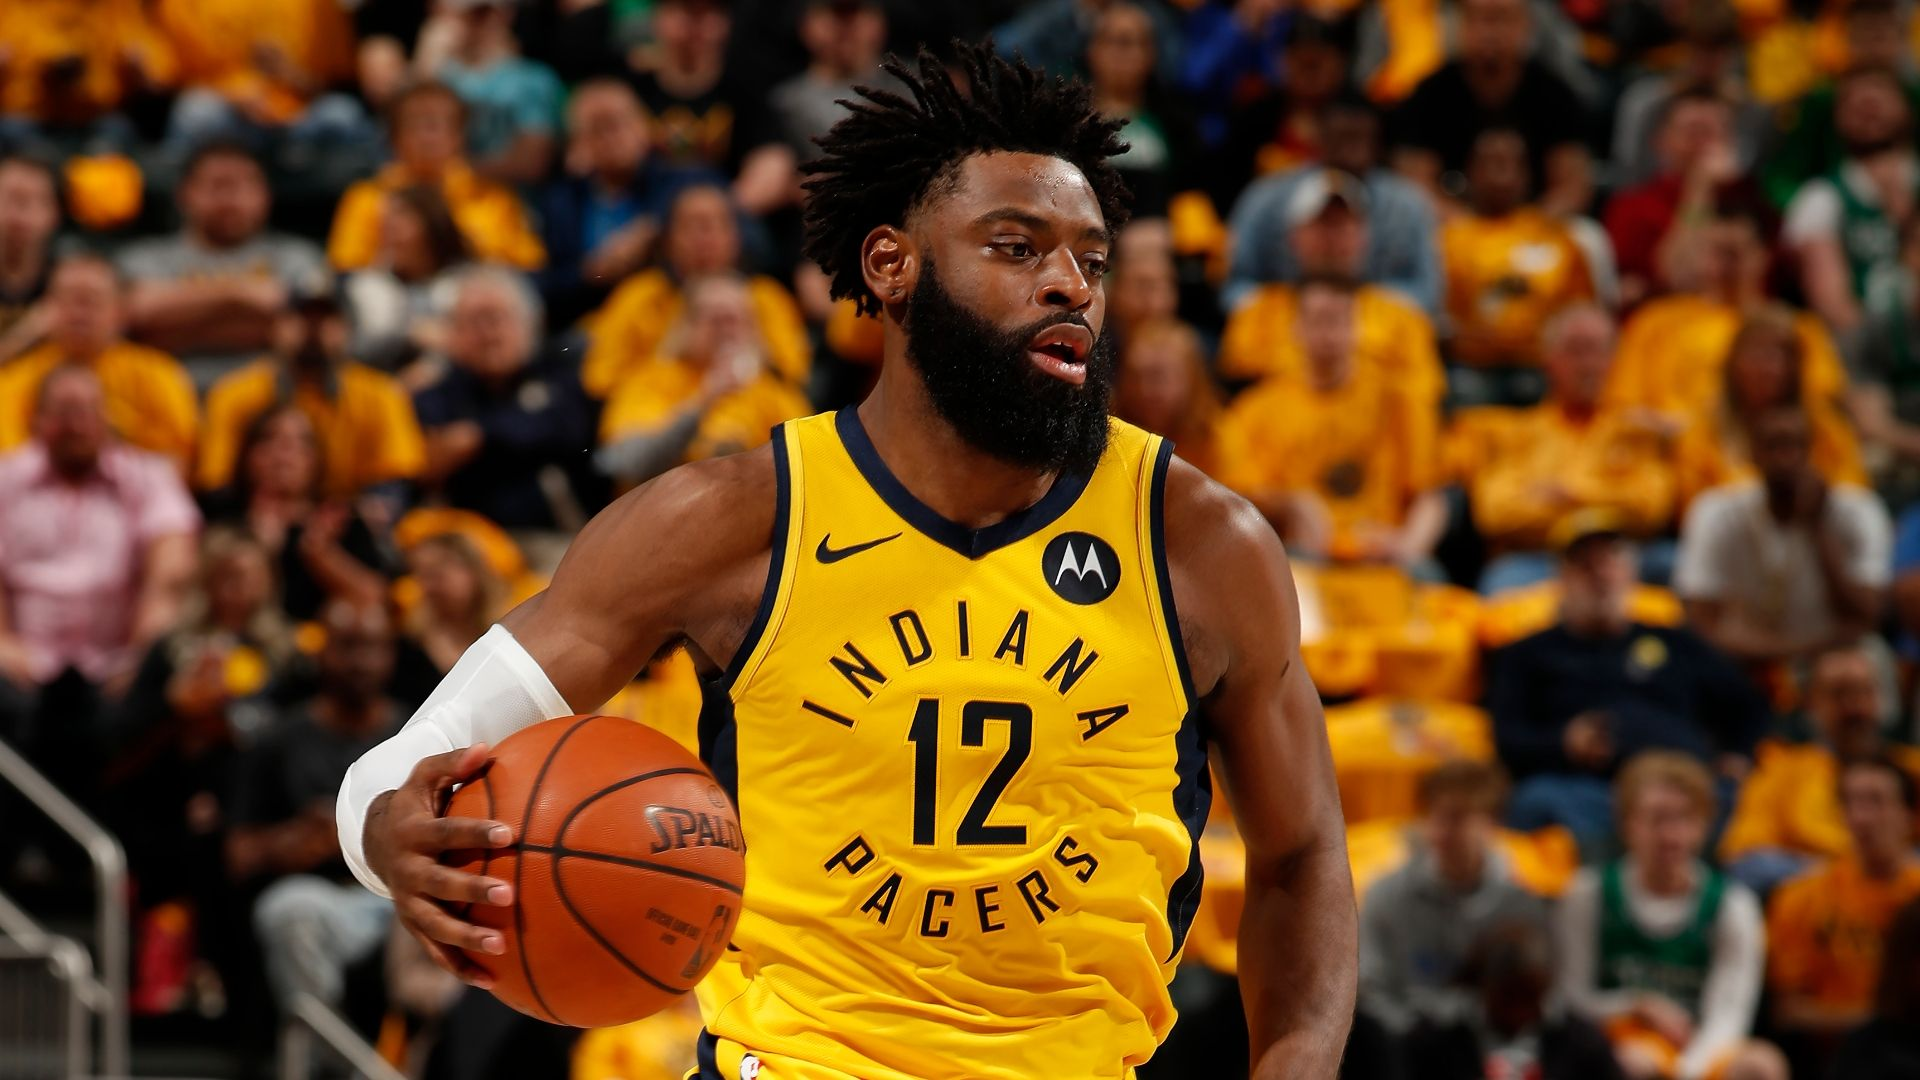 Tyreke Evans disqualified from NBA for 2 years